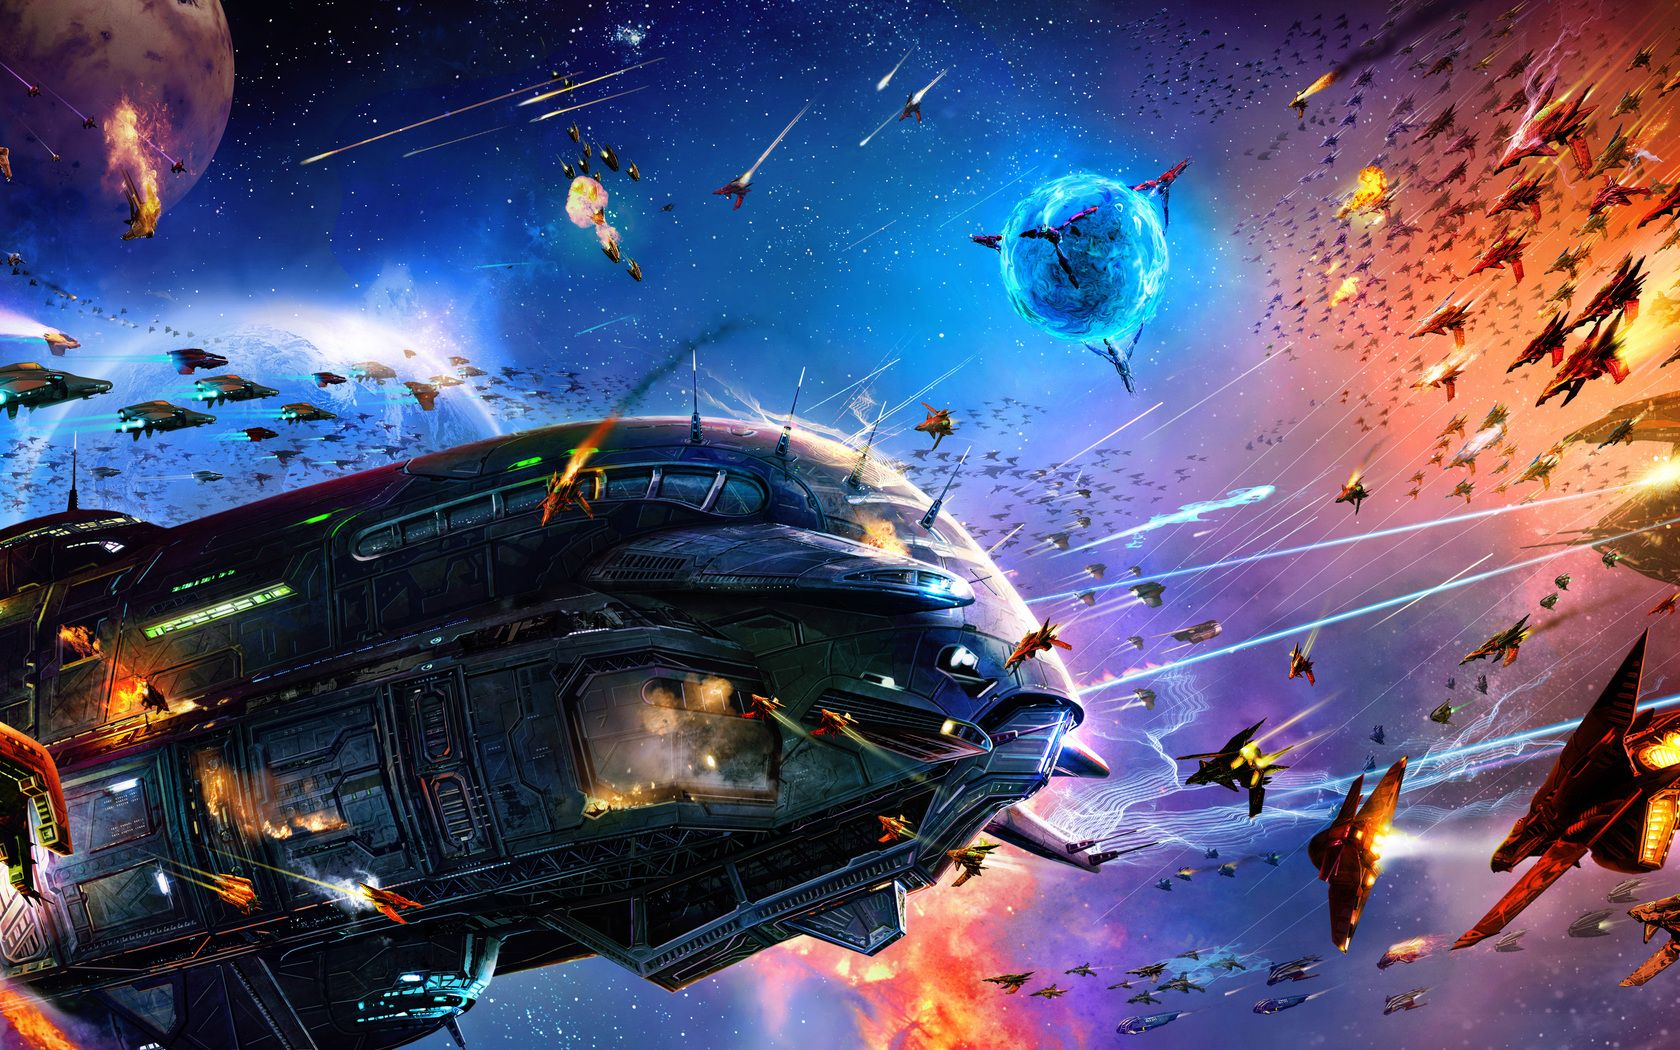 Space Battle Wallpapers Top Free Space Battle Backgrounds Wallpaperaccess